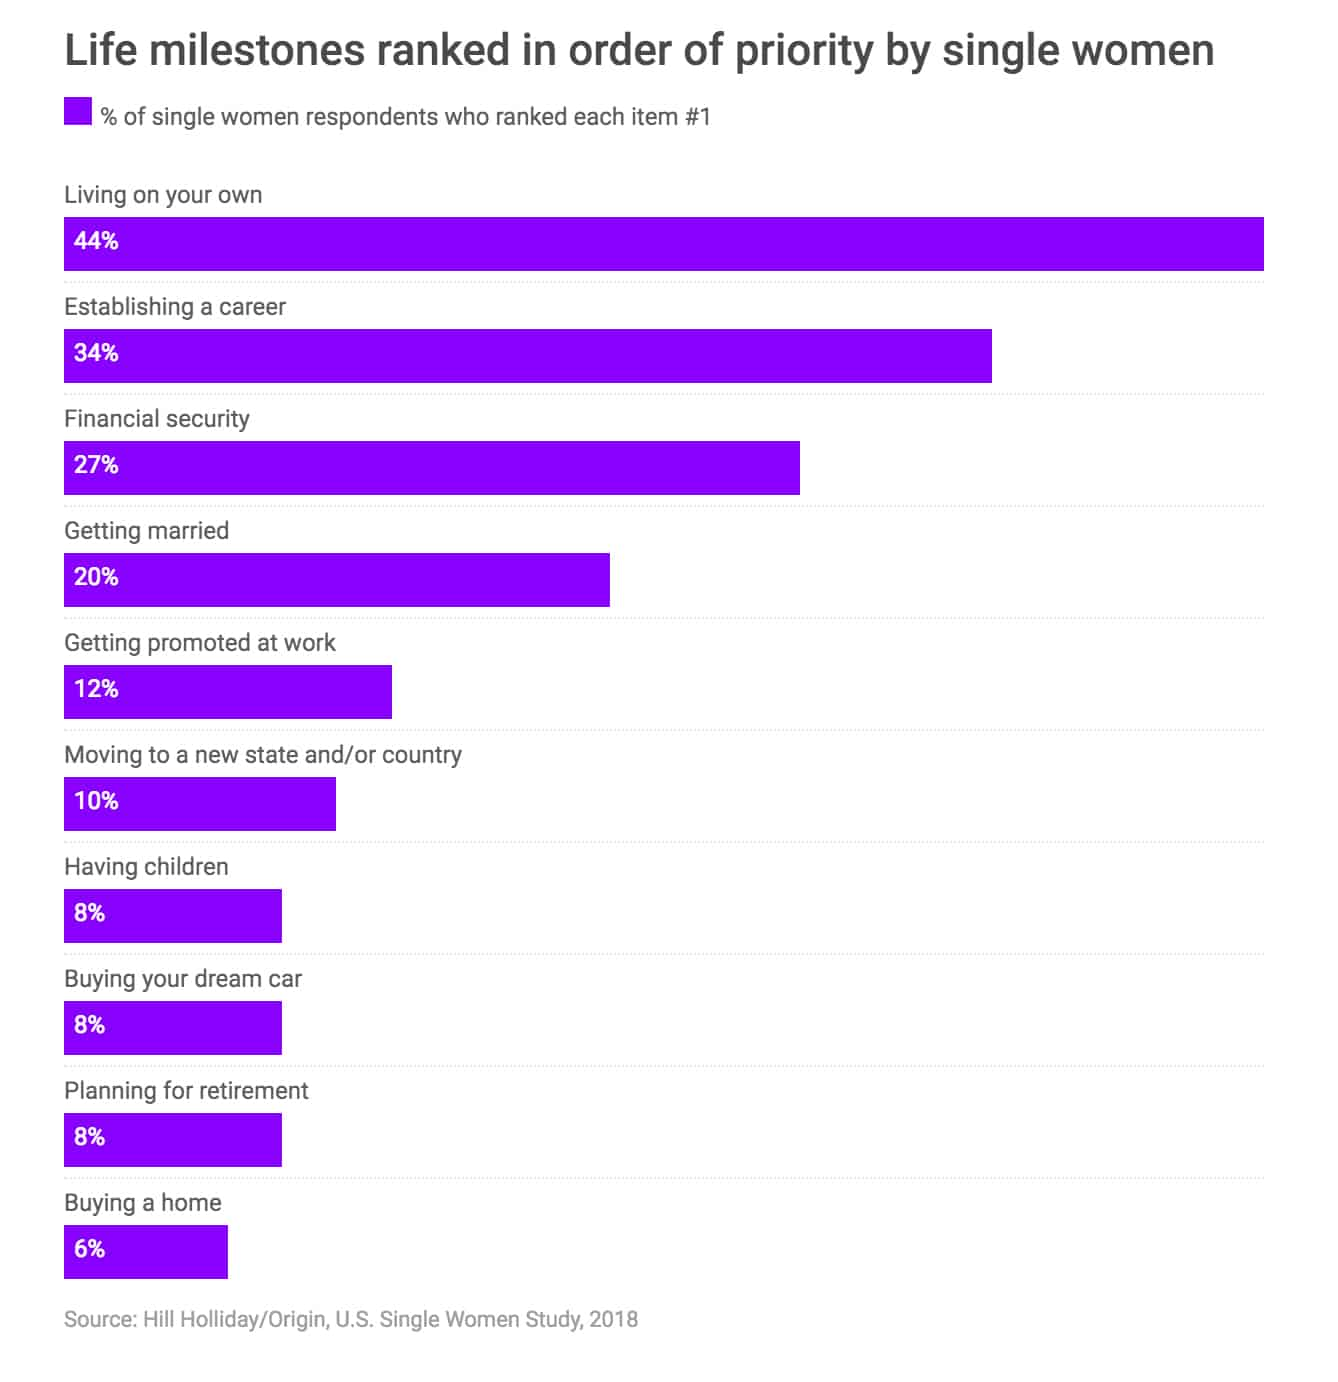 life milestones ranked in order of priority by single women, bar graph